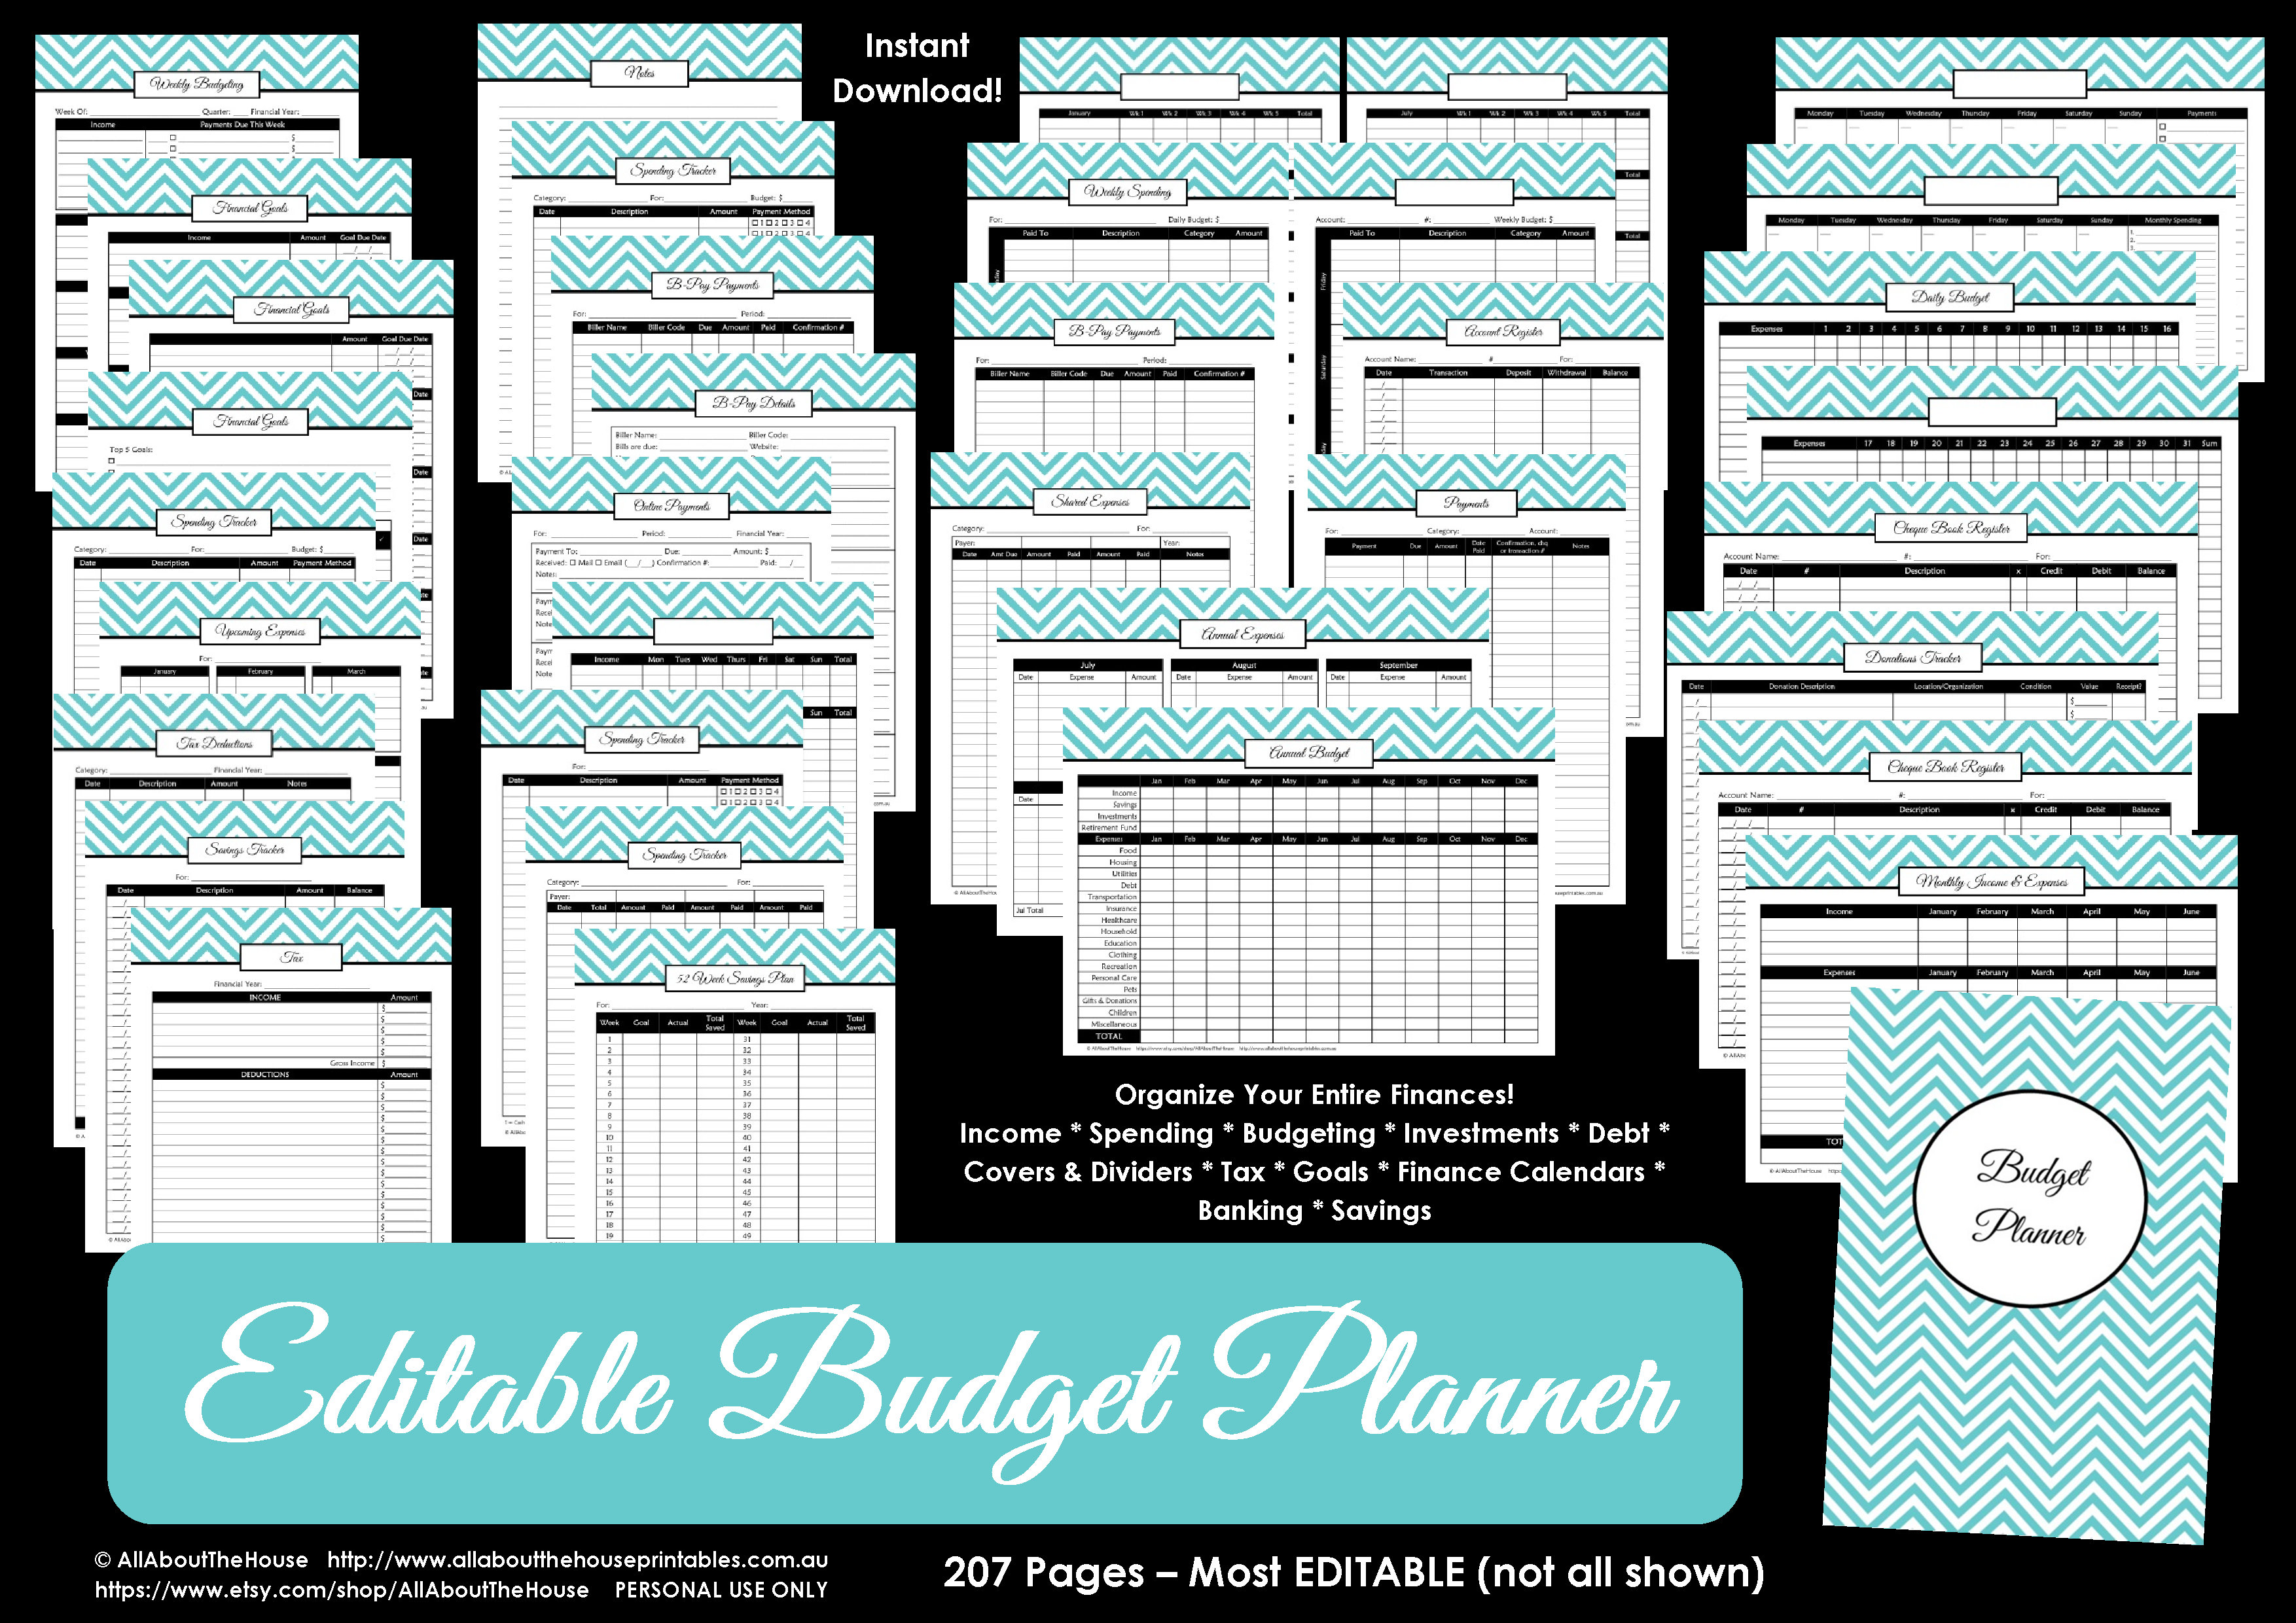 printable budget planner, budget binder, budget printable, monthly budget, savings tracker, planner cover, binder cover, binder insert, tax planner, family budget, bill tracker, bills checklist,